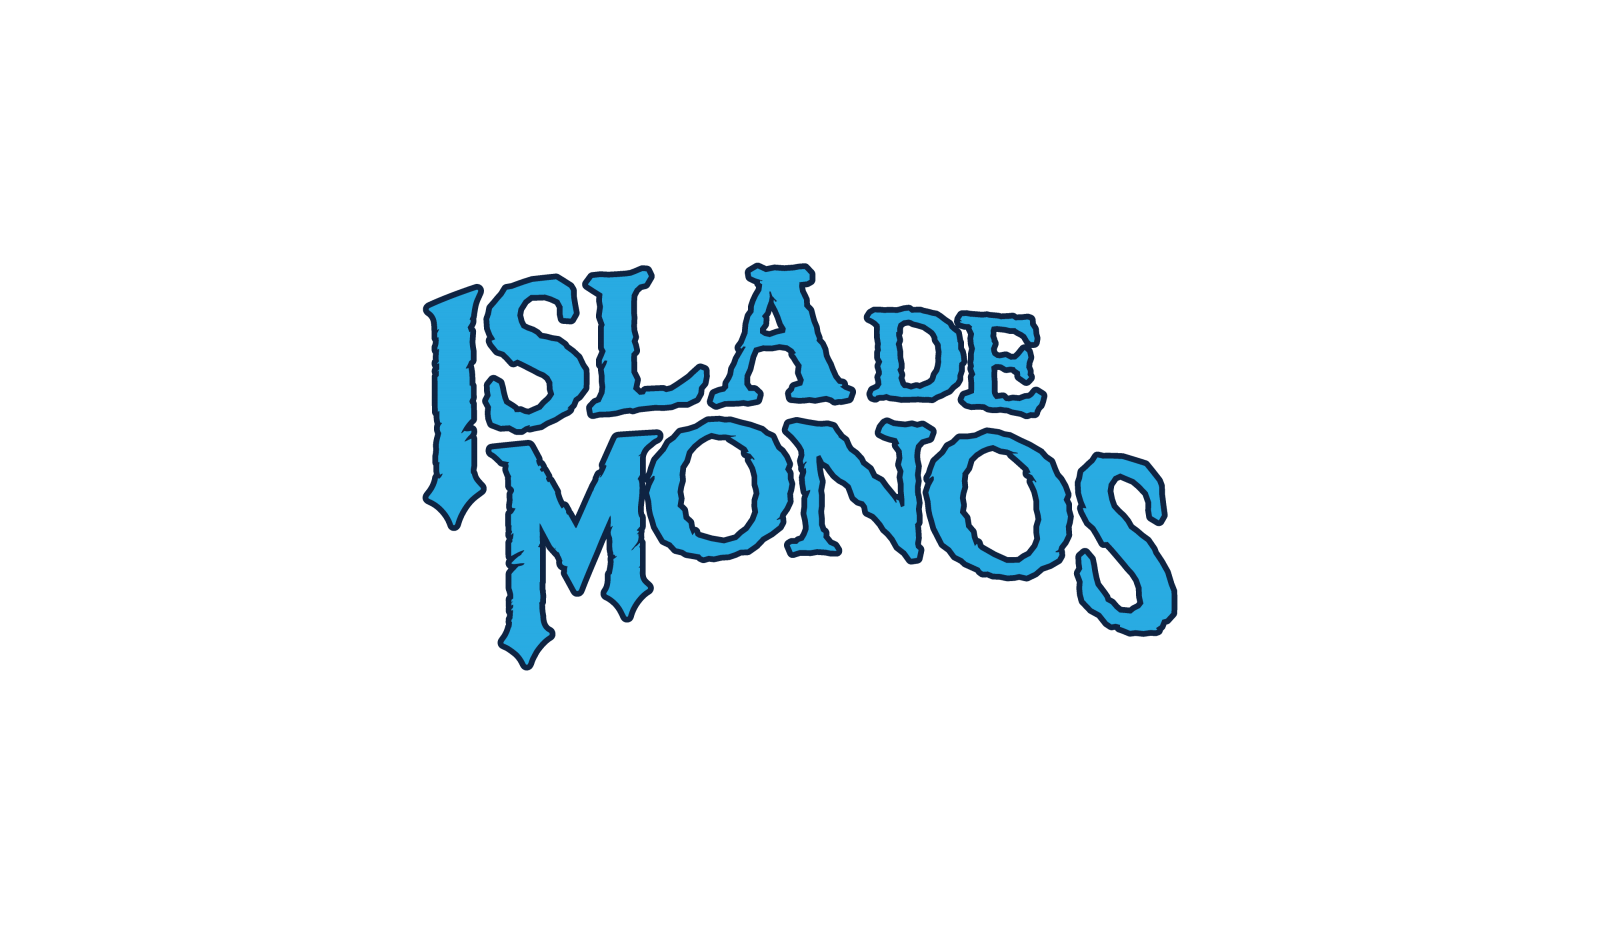 Isla de Monos